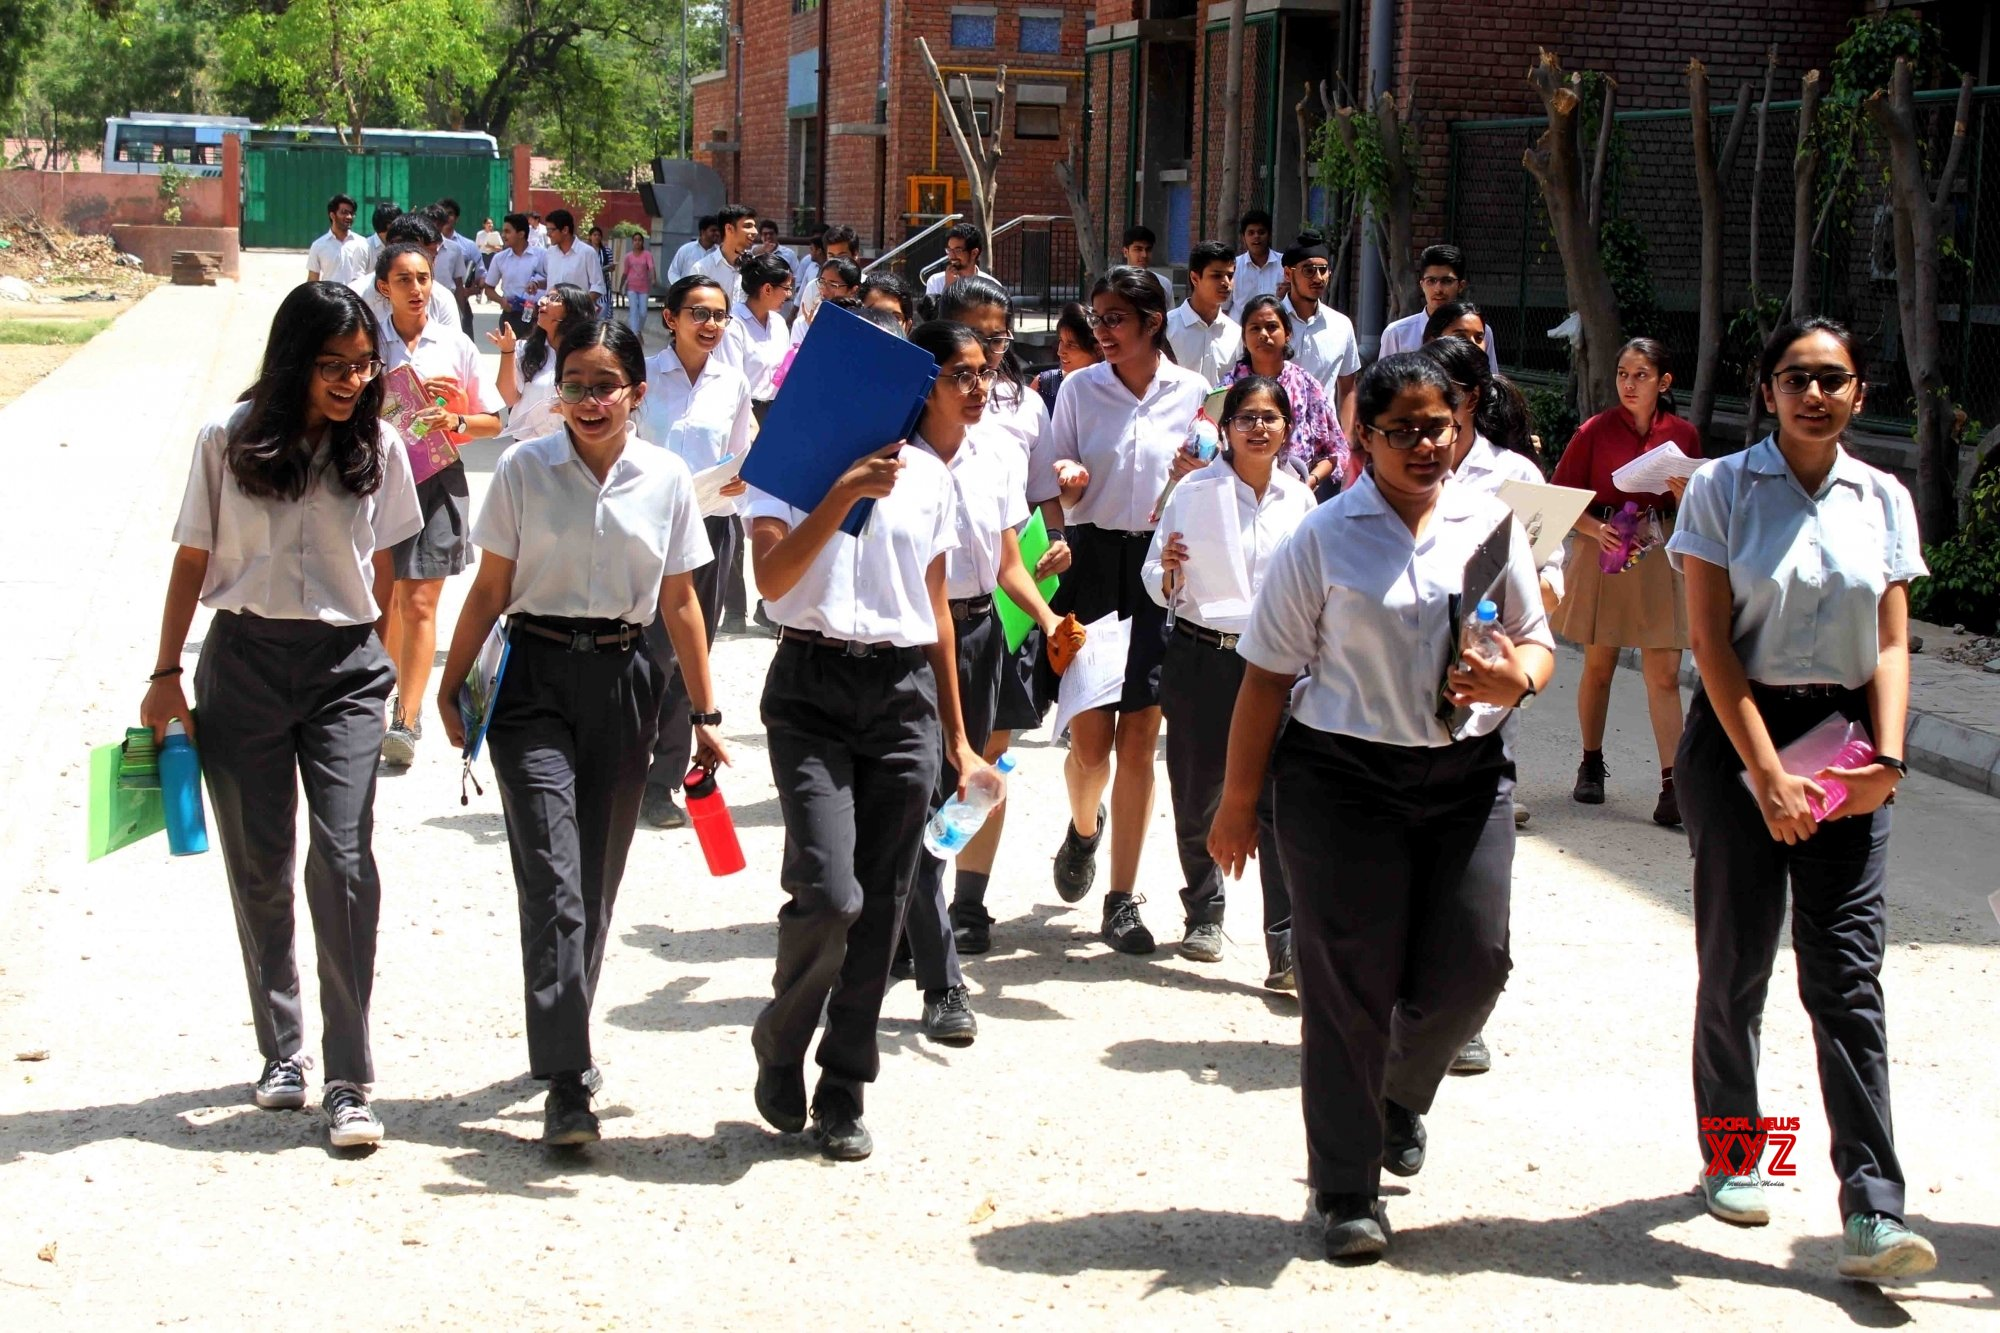 31 lakh students to take CBSE exams this year